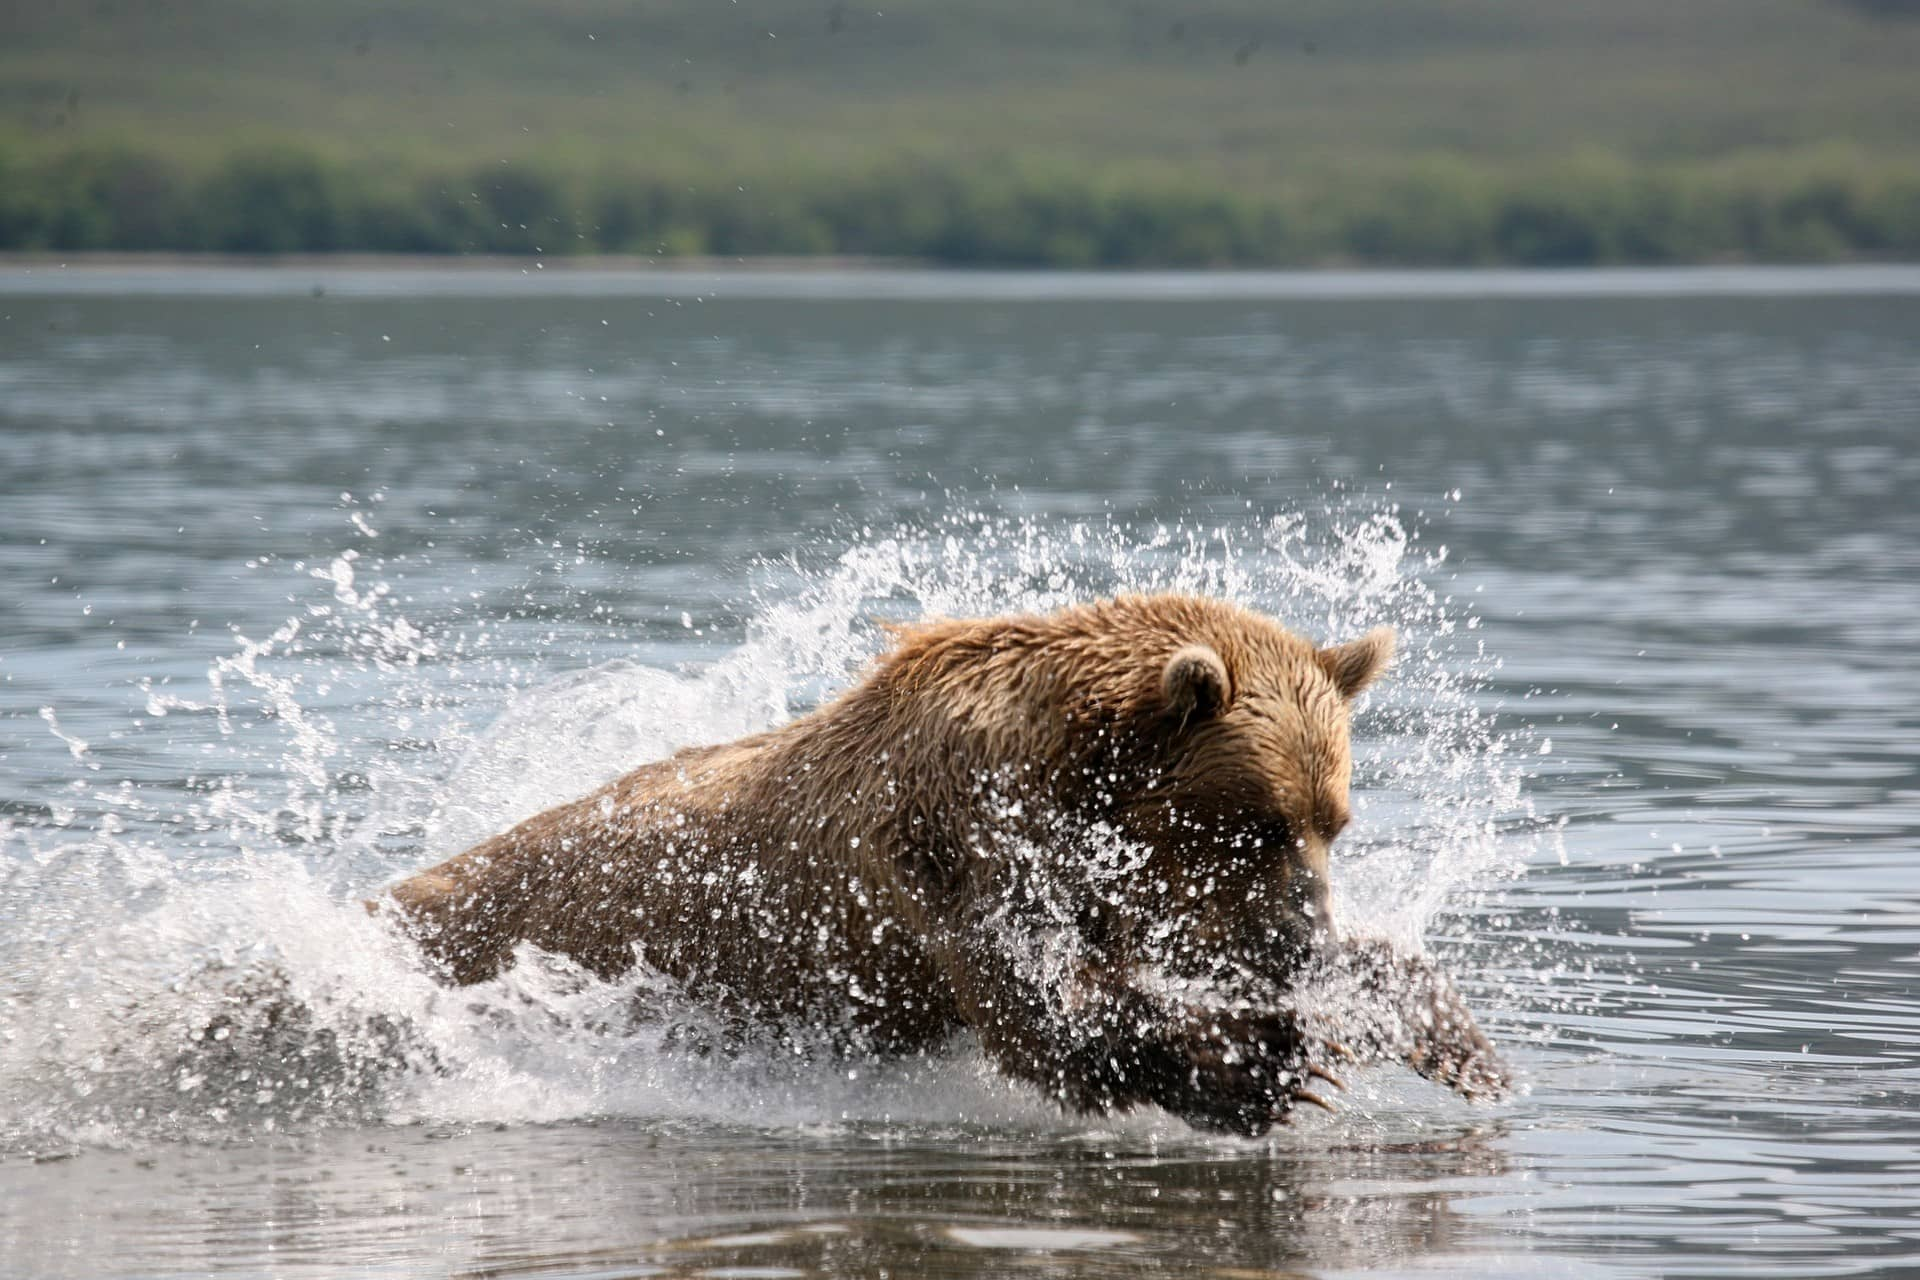 A Brown bear in the water